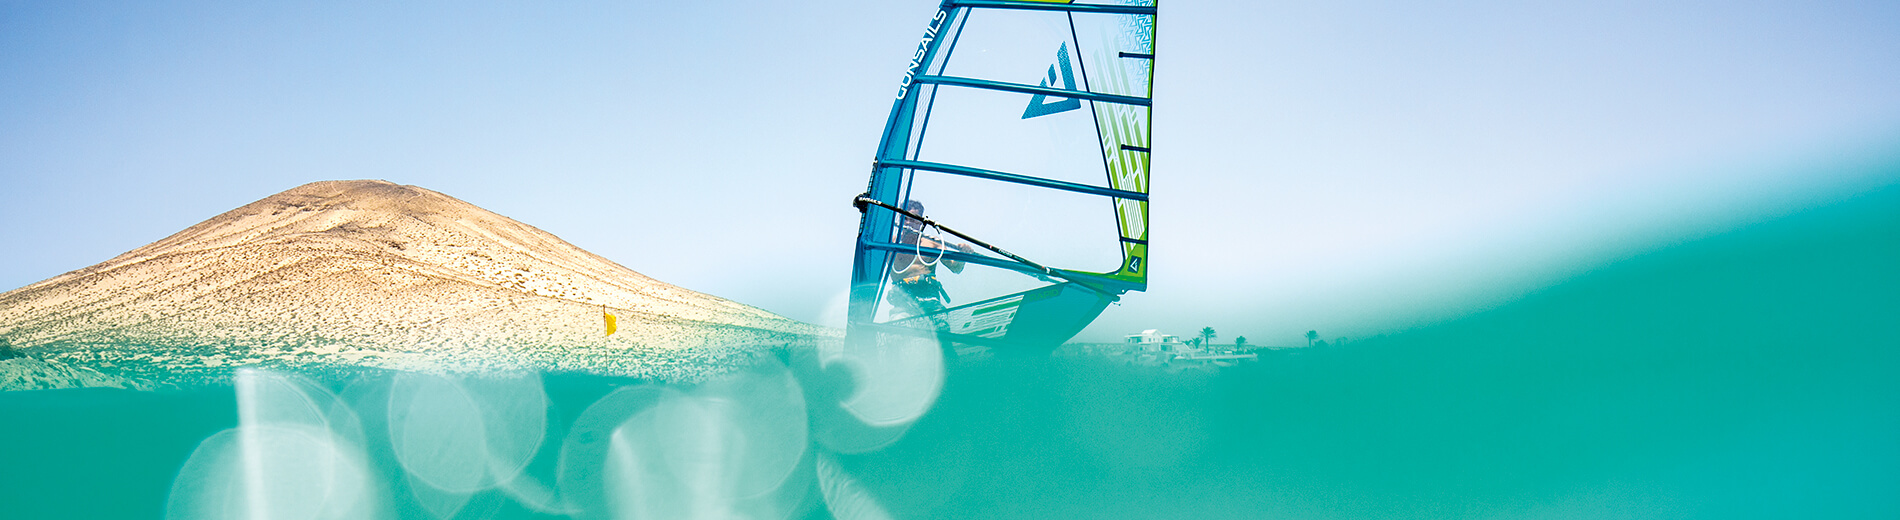 GUNSAILS | Dealers - Windsurf Shops worldwide